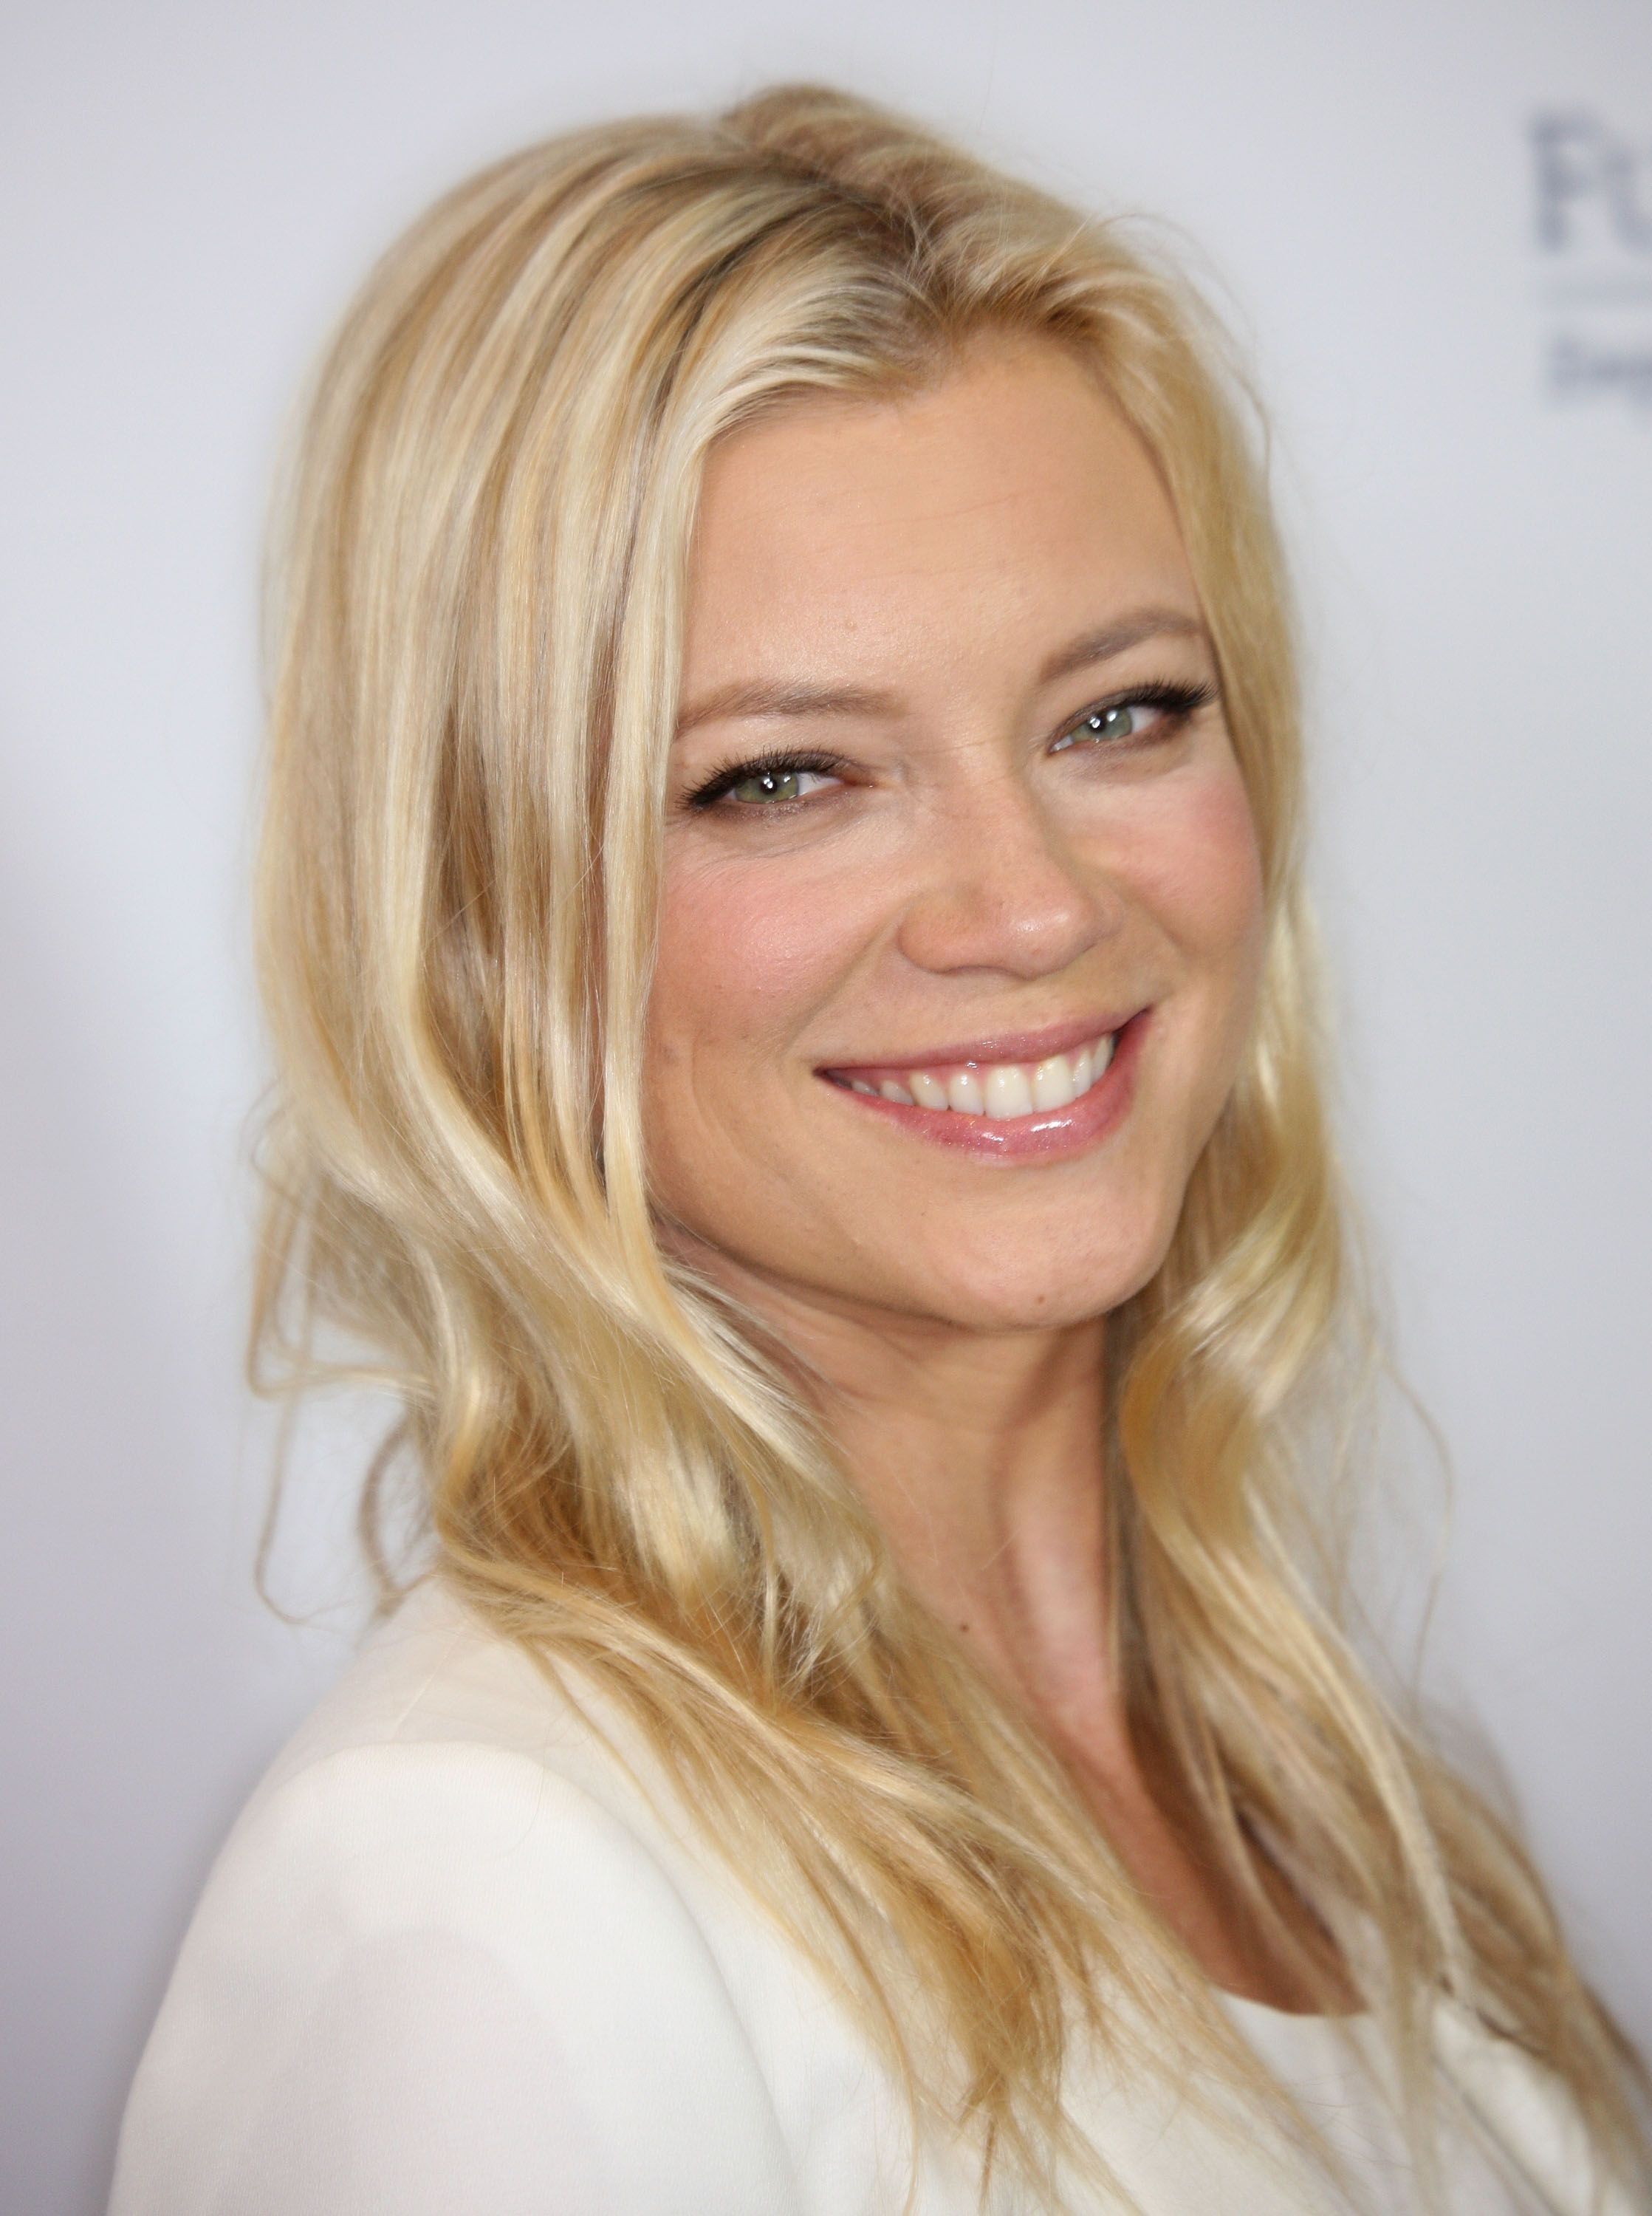 amy-smart - Microsoft Store